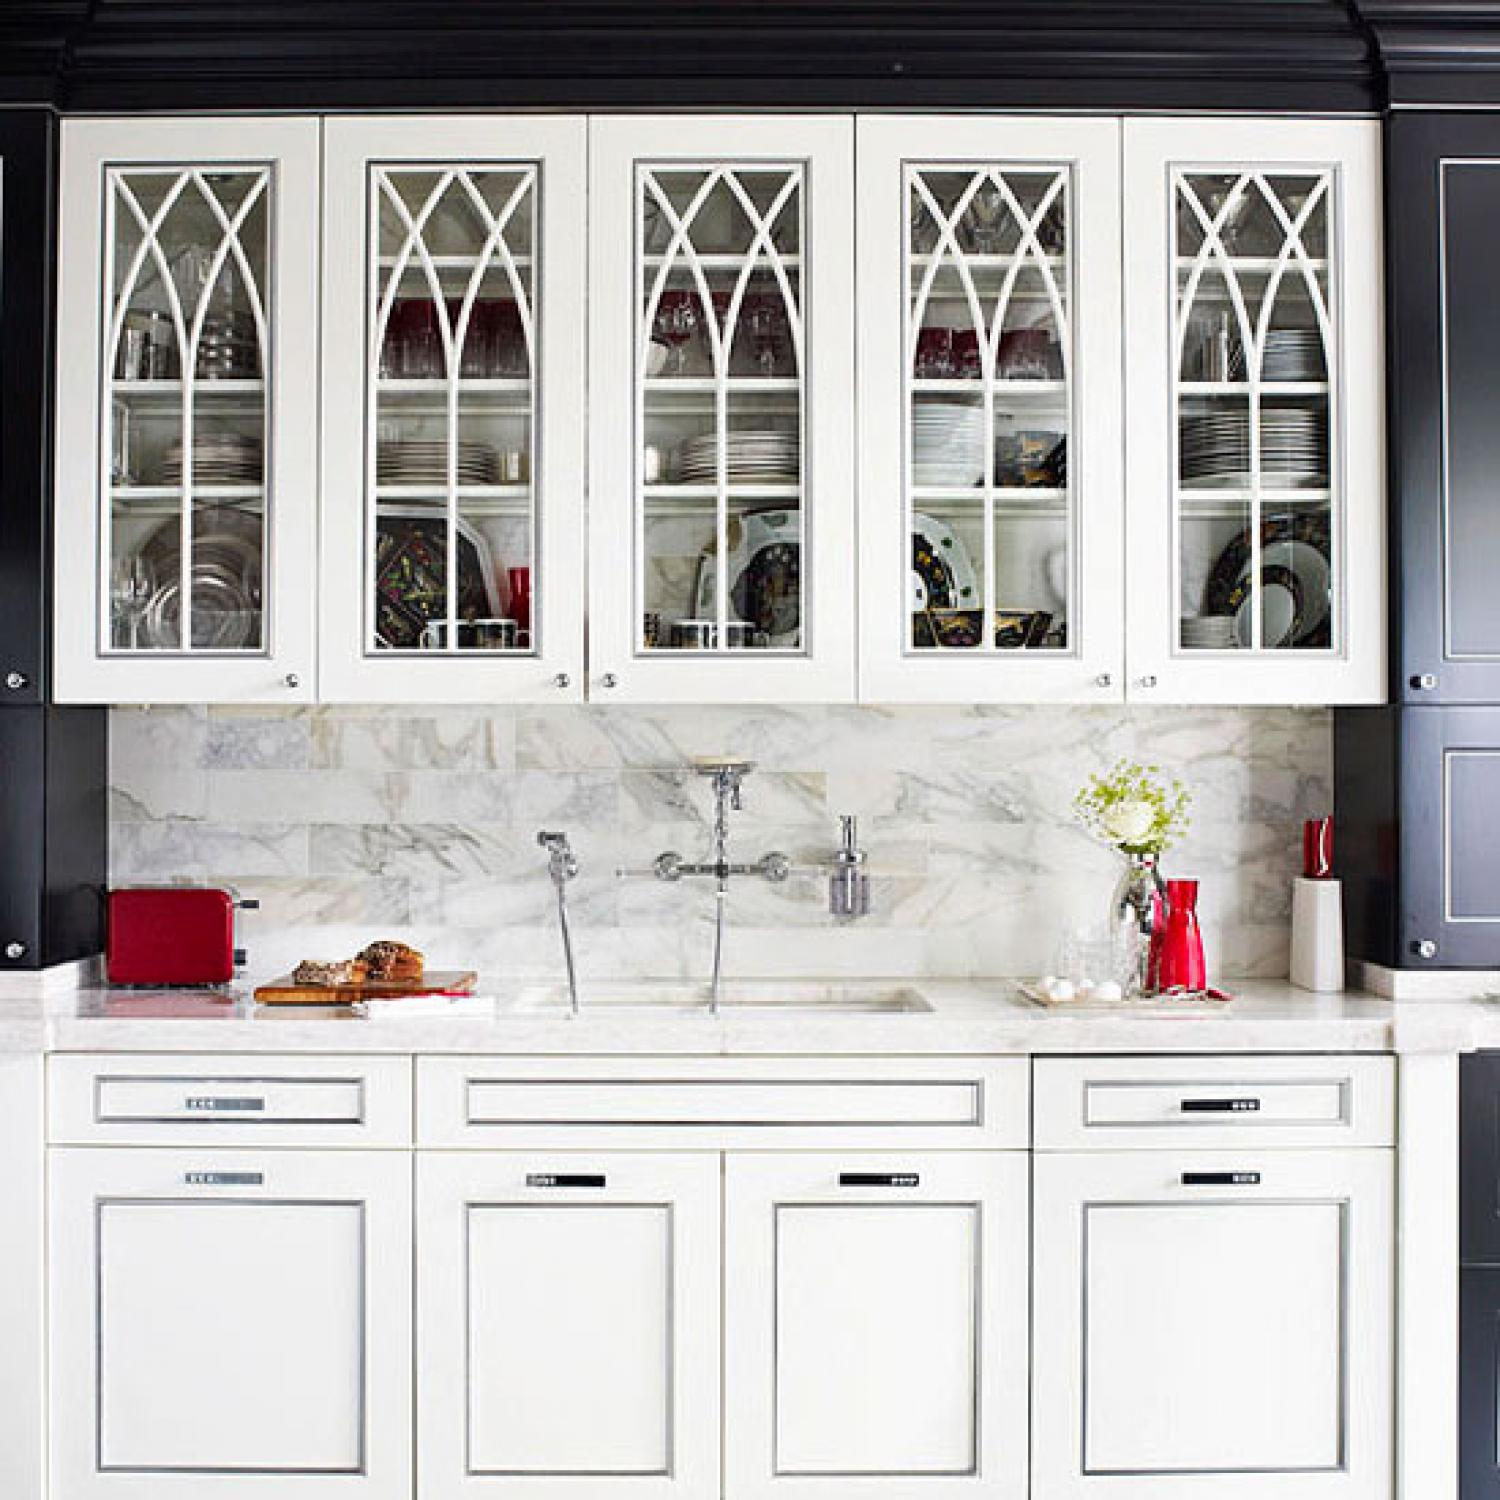 Kitchen Cabinets: Distinctive Kitchen Cabinets With Glass-Front Doors